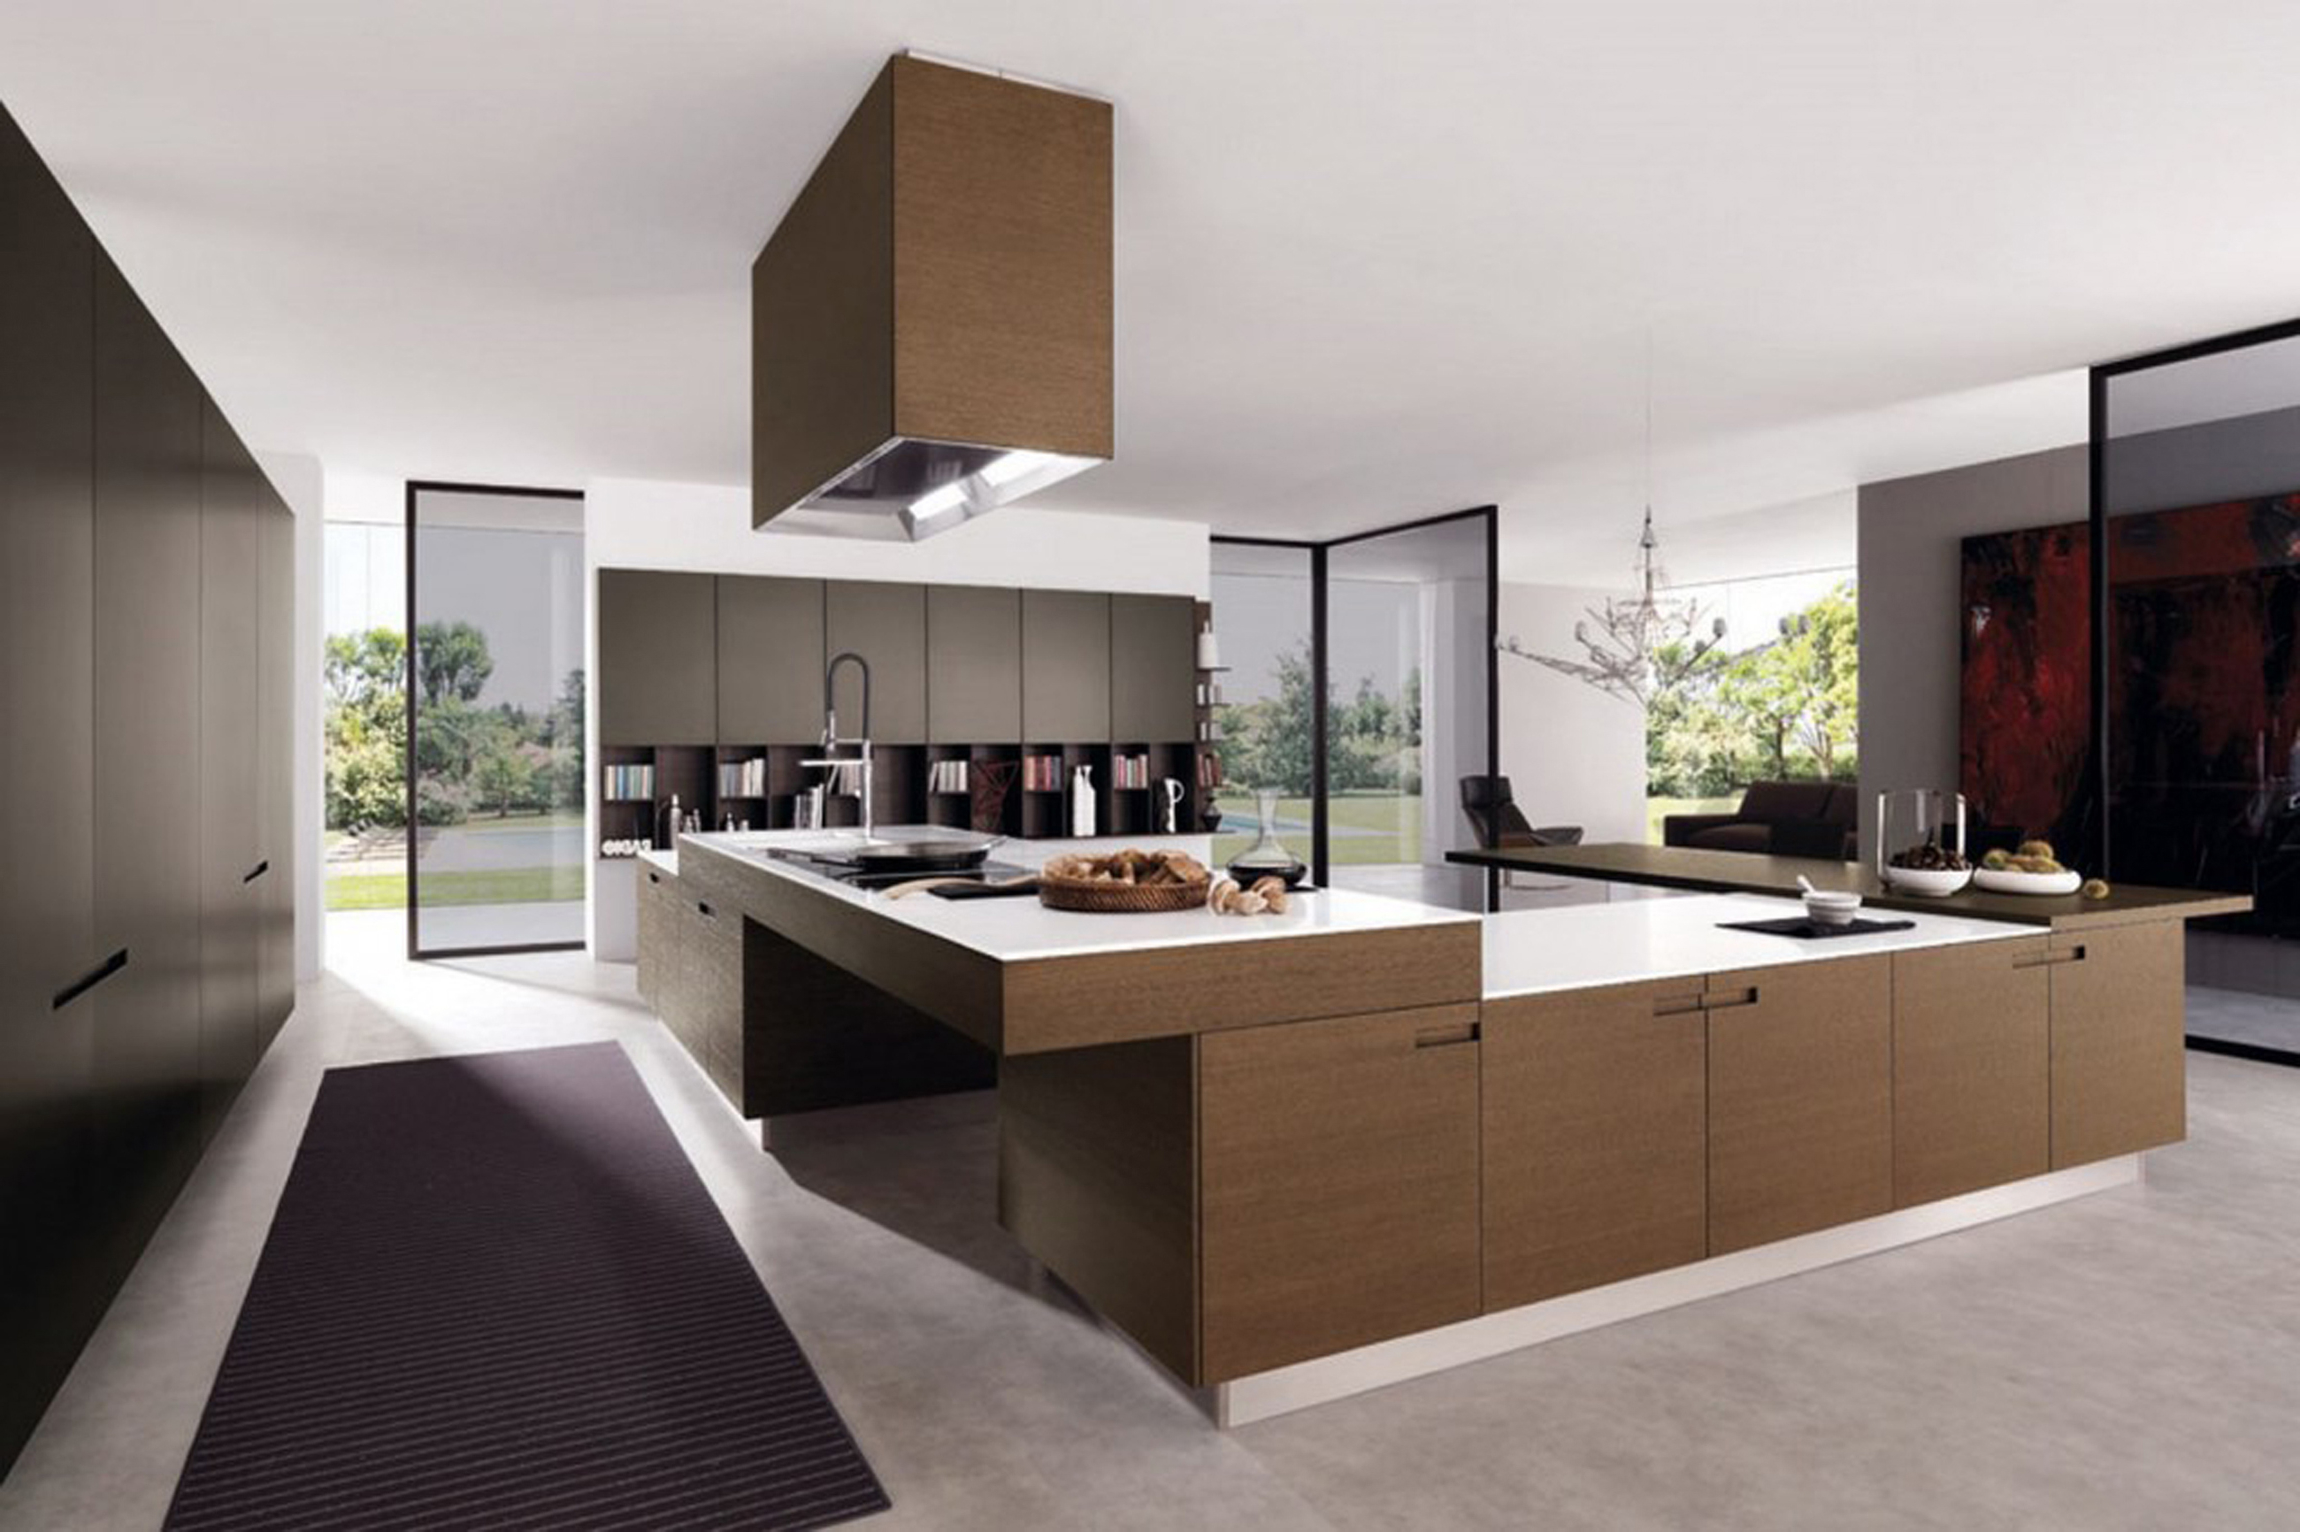 Decoration For Elegance Classic Modern Kitchen Design Best Contemporary (View 2 of 39)